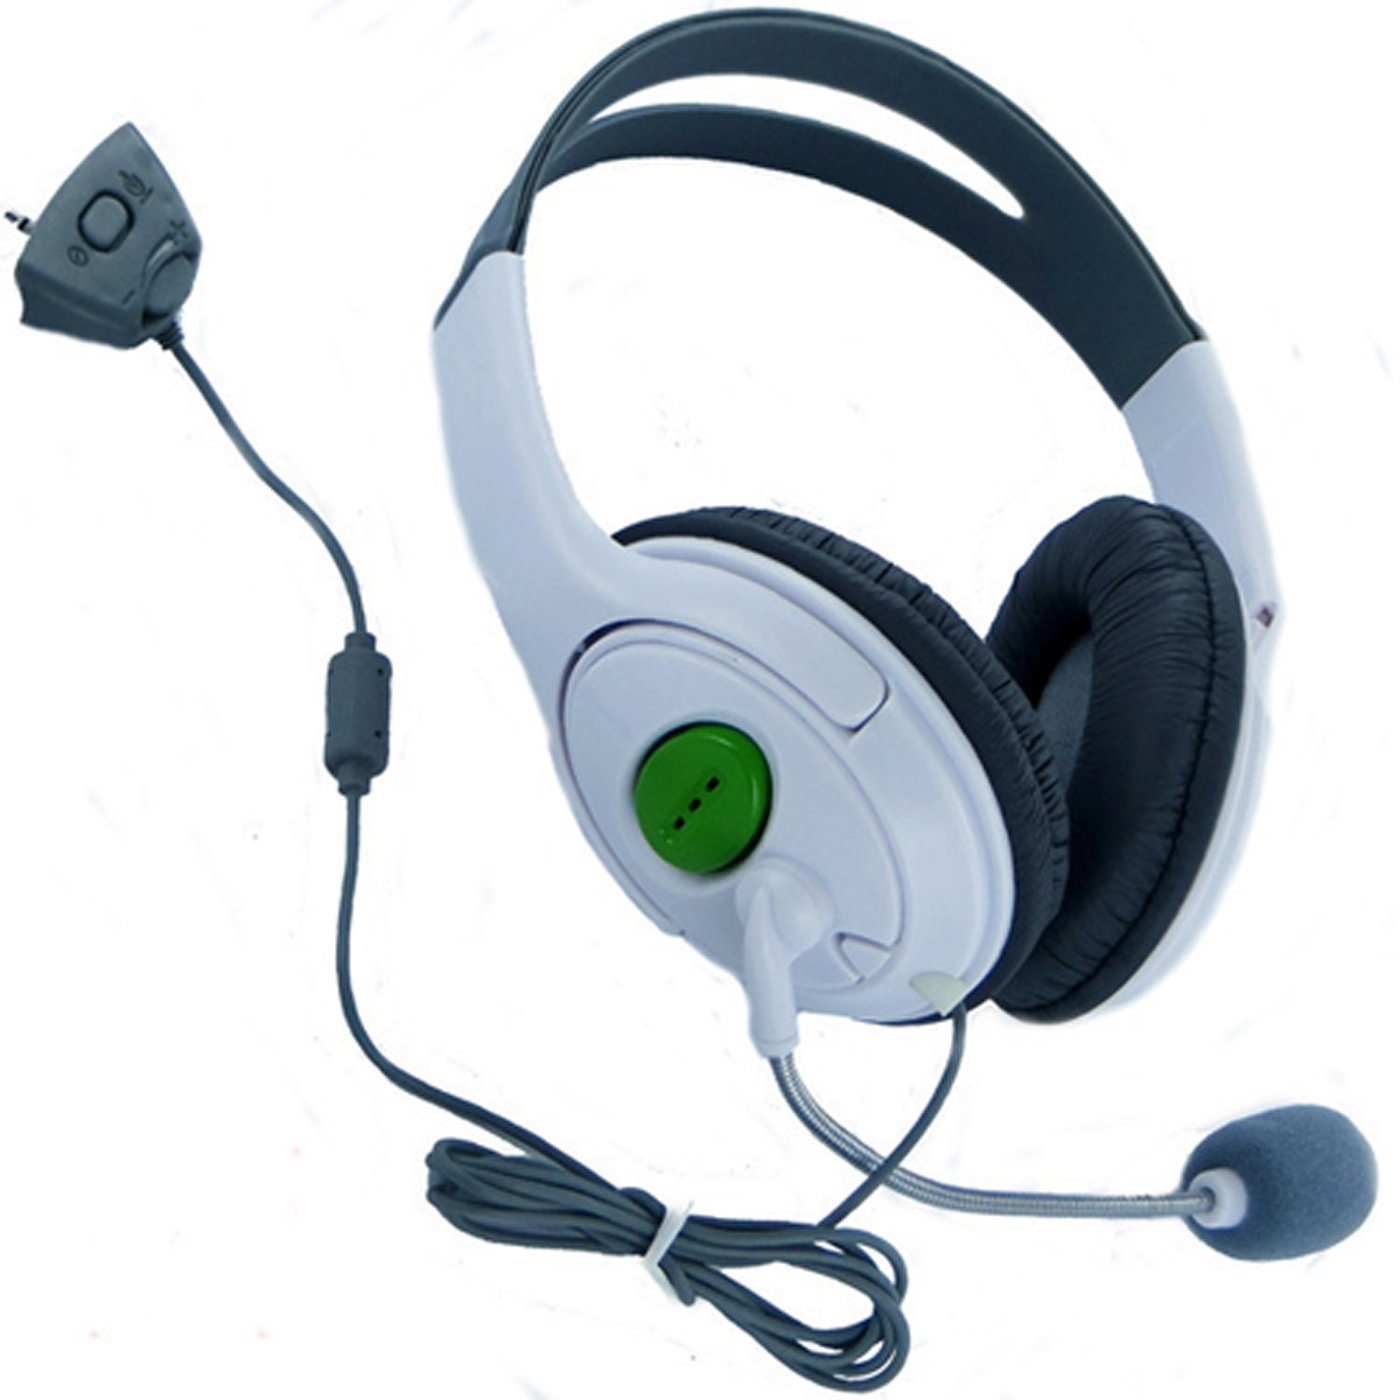 Amazon.com: HDE Gaming Chat Headset with Microphone for Xbox 360 ...